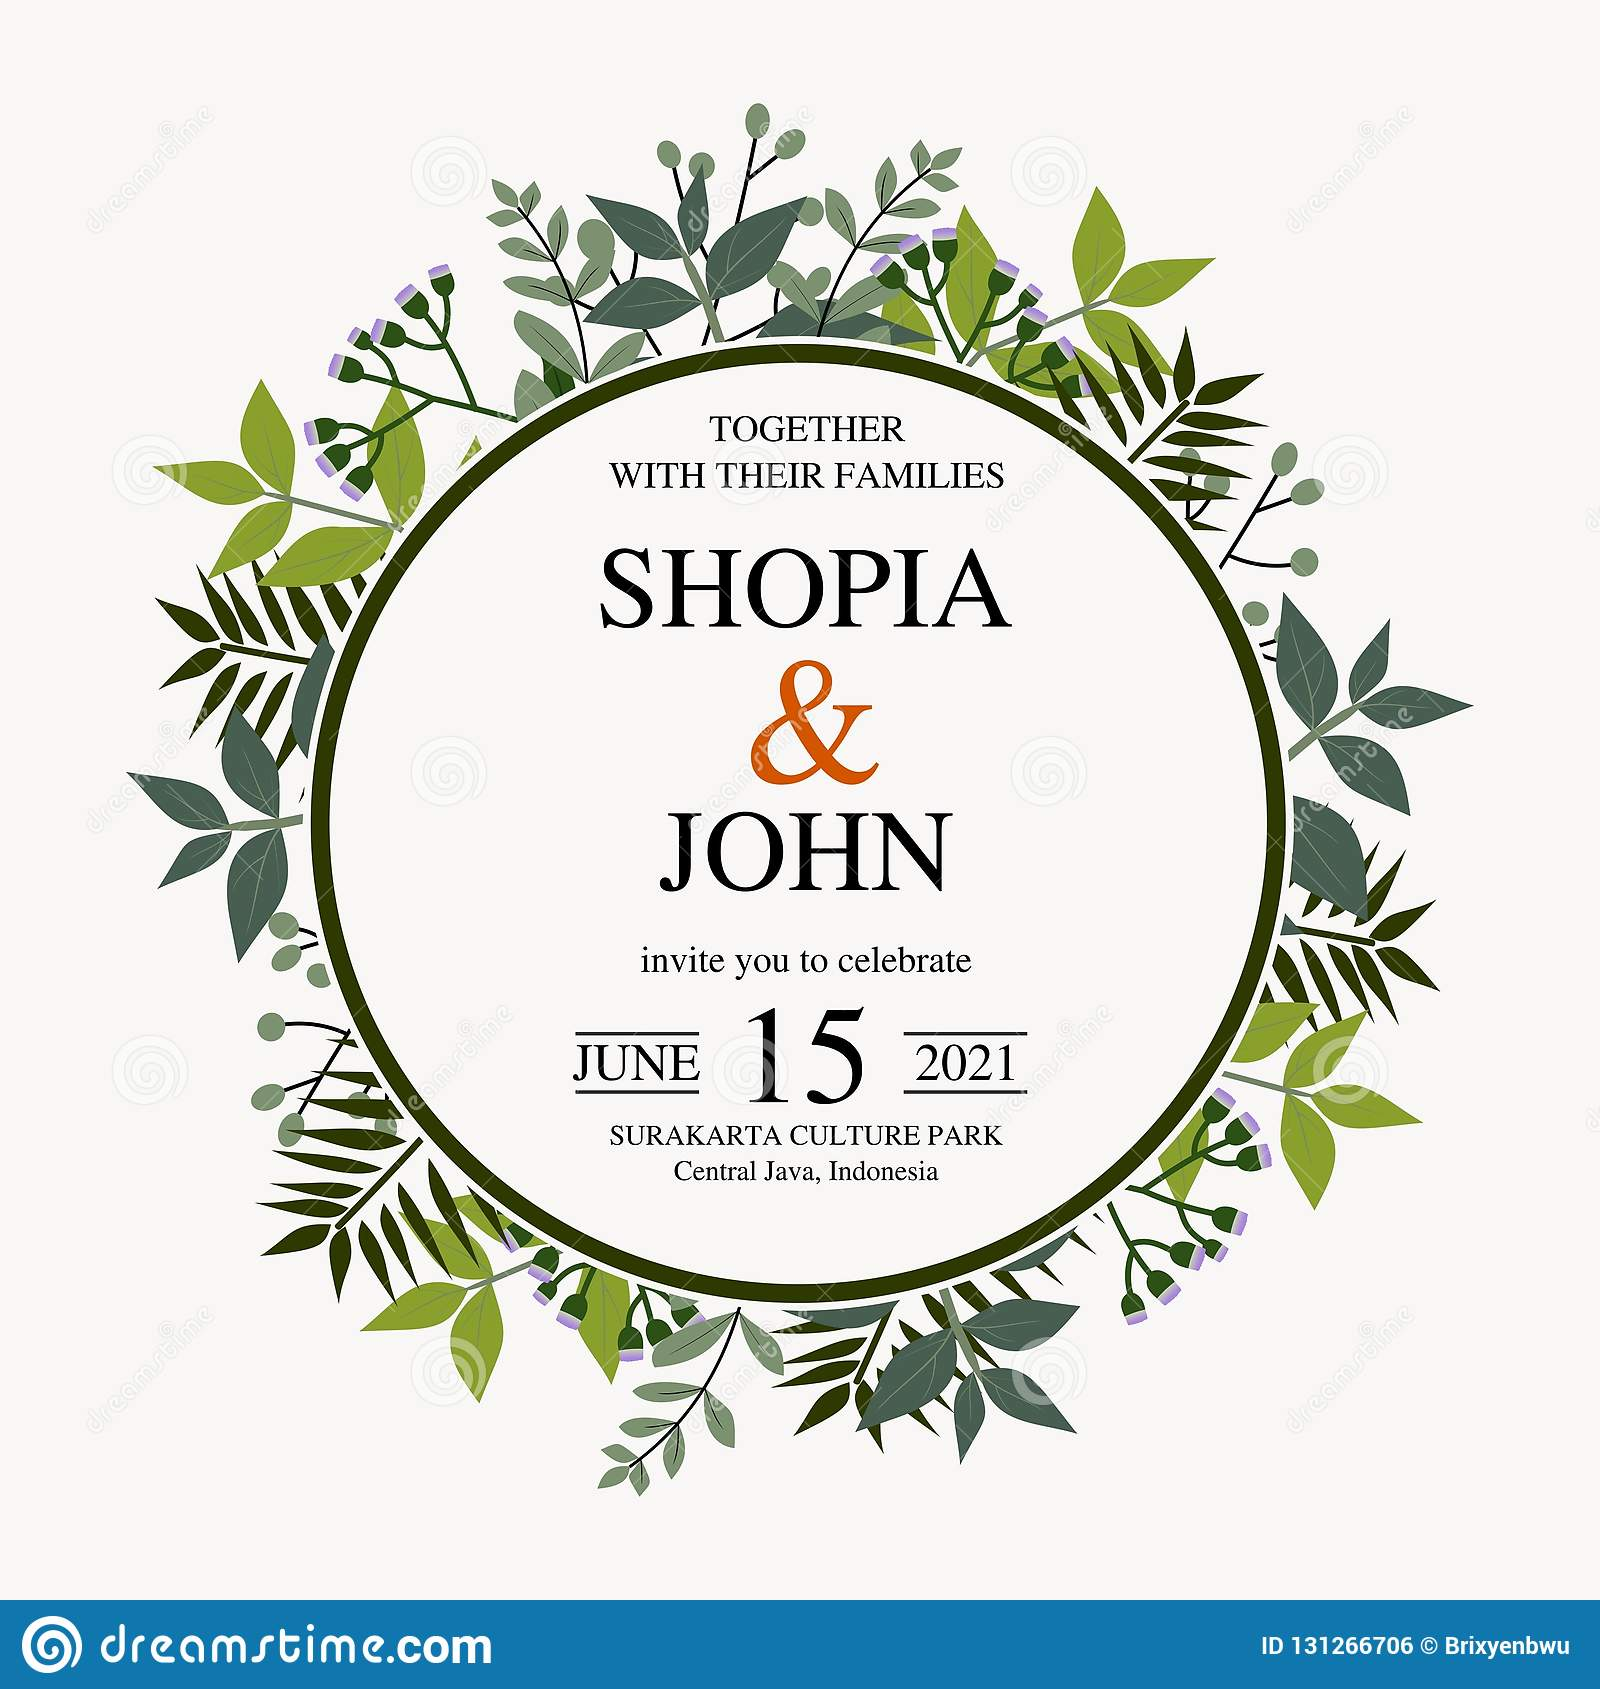 Beautiful Wedding Invitation. Vector Natural, Botanical, Elegant